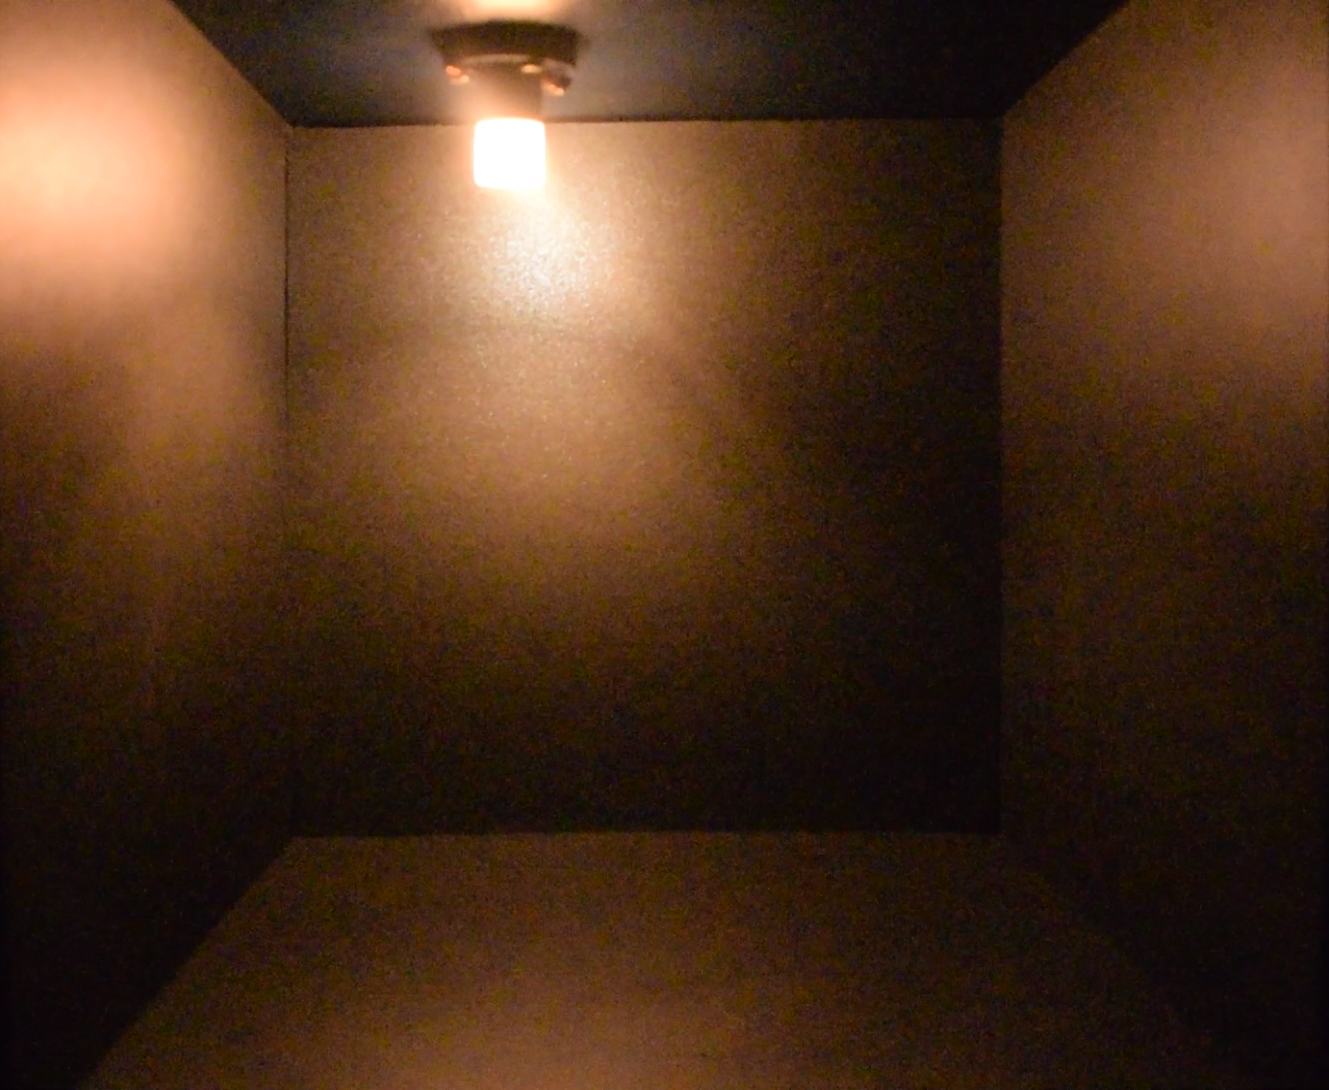 Trauma by artist Priti Patel is a piece of conceptual art. It is a model empty square room showing a light flashing Help in Morse code